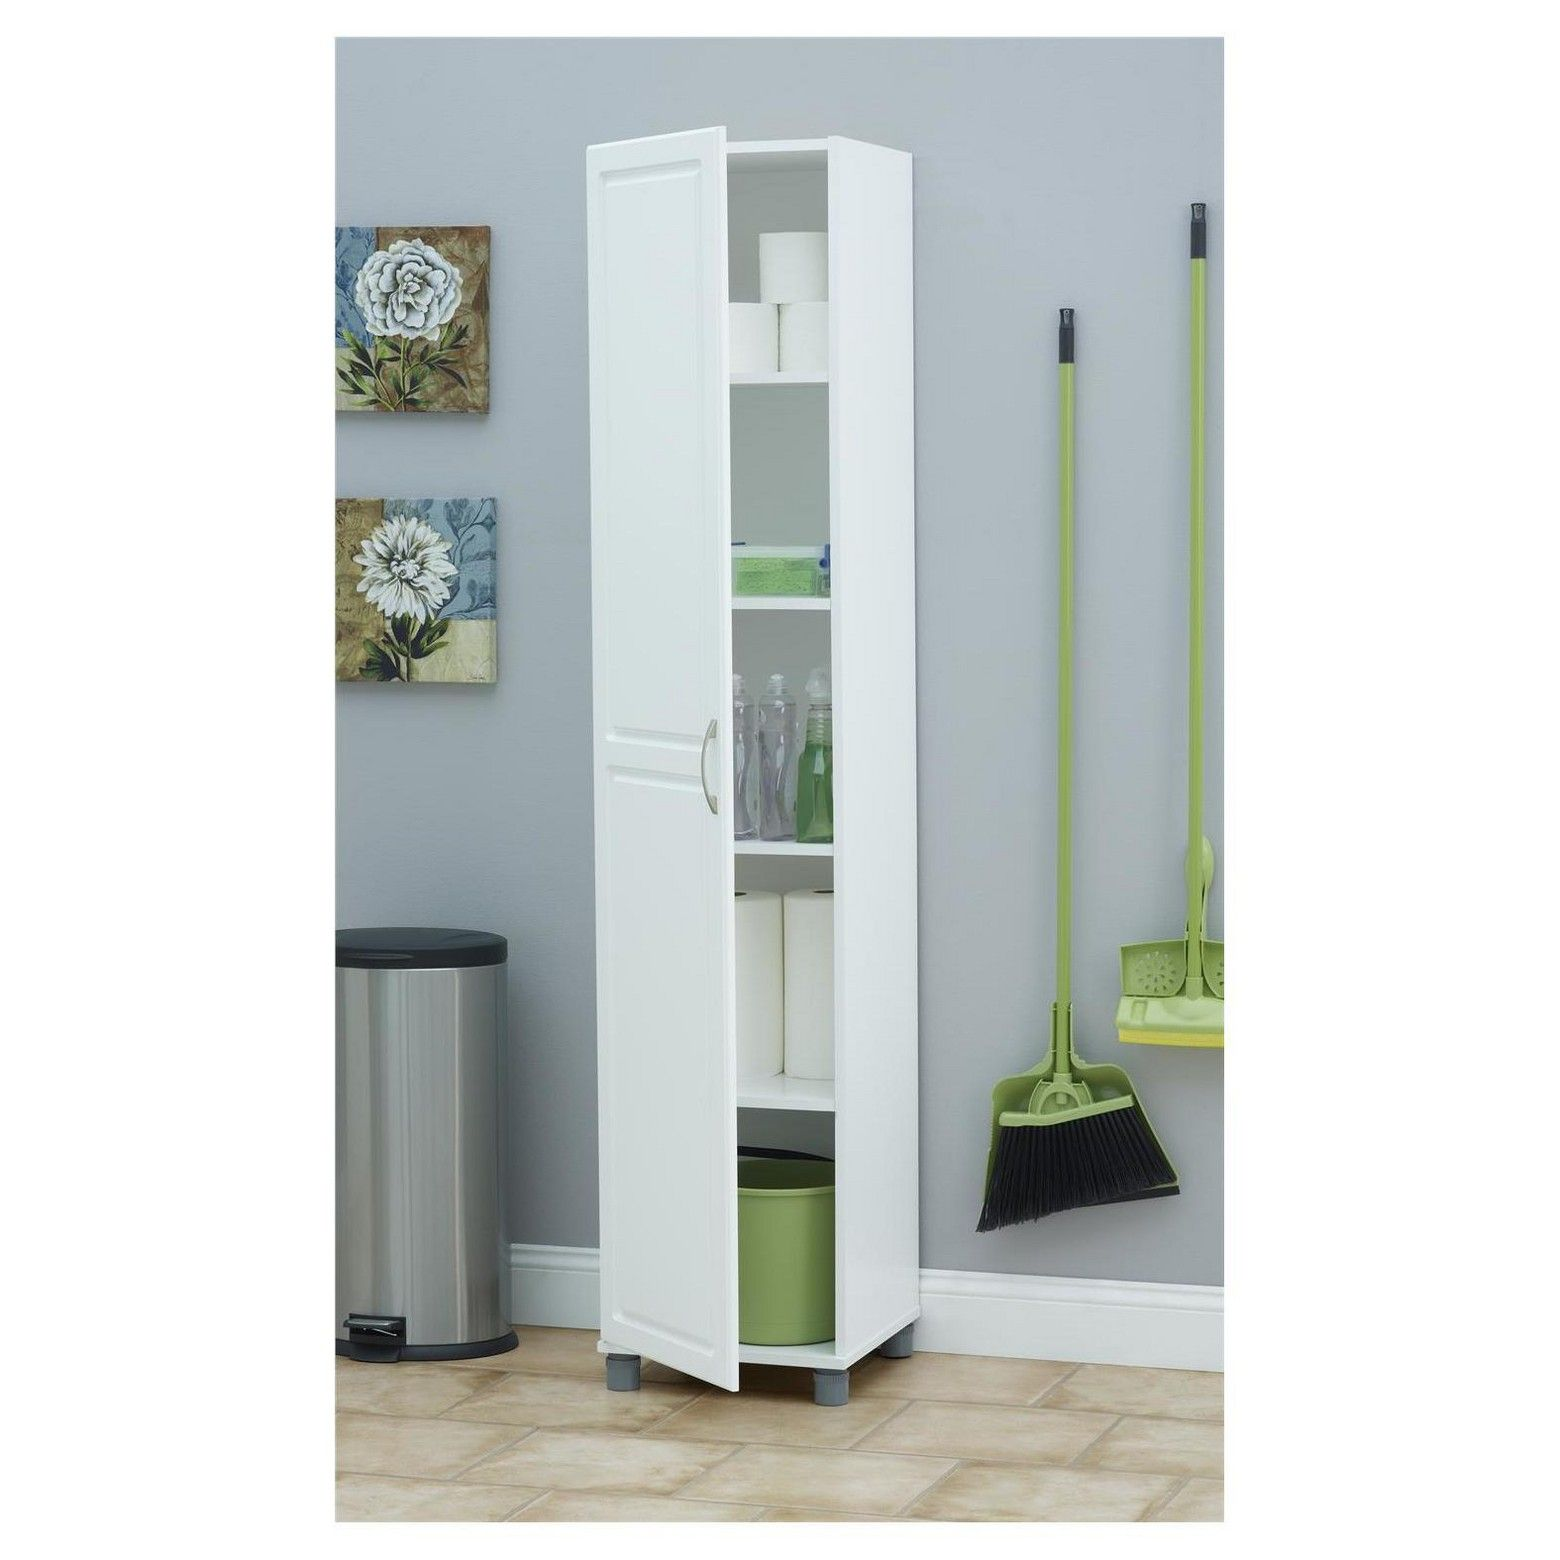 Kendall 16 | Storage cabinets, Storage ideas and Floor space